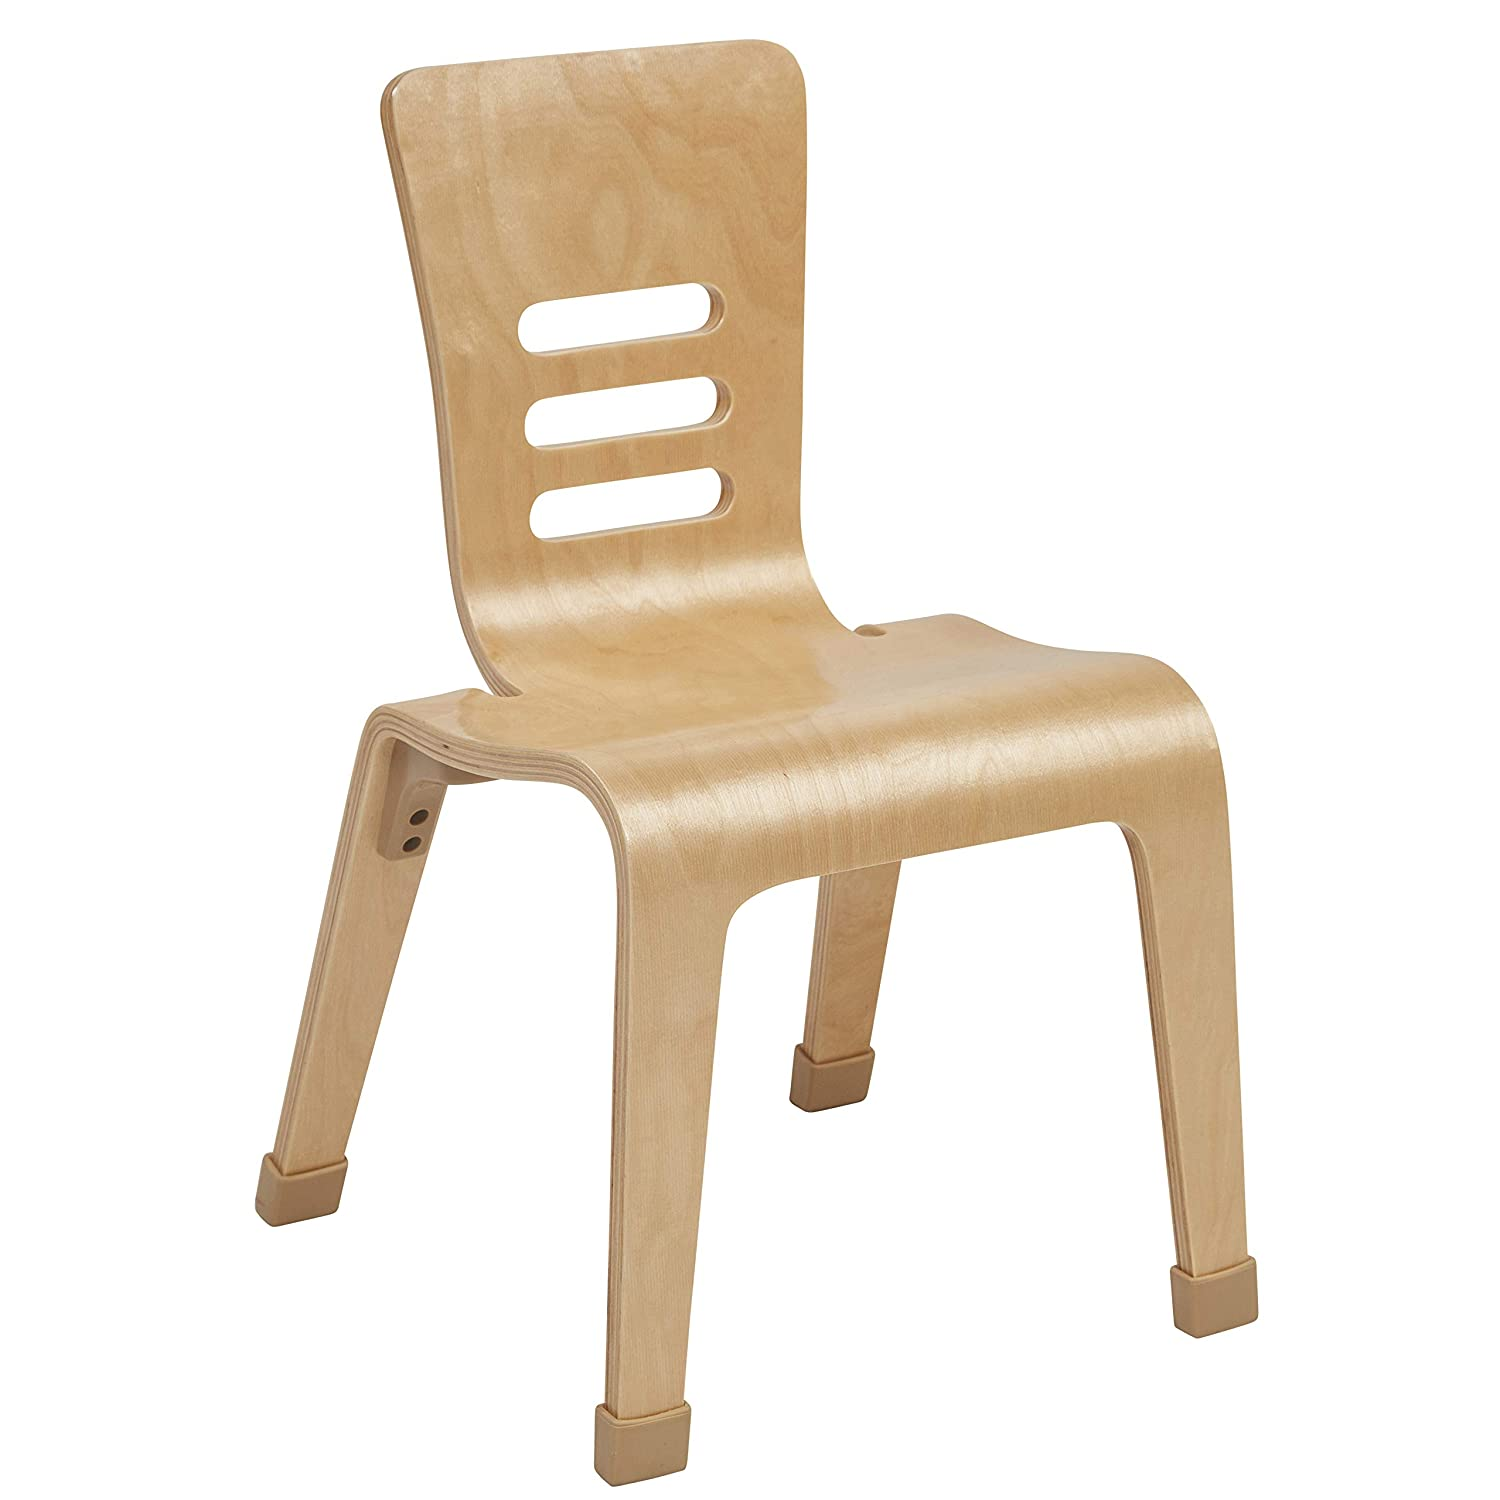 ECR4Kids 10 Bentwood School Stacking Chair for Students 2-Pack Natural